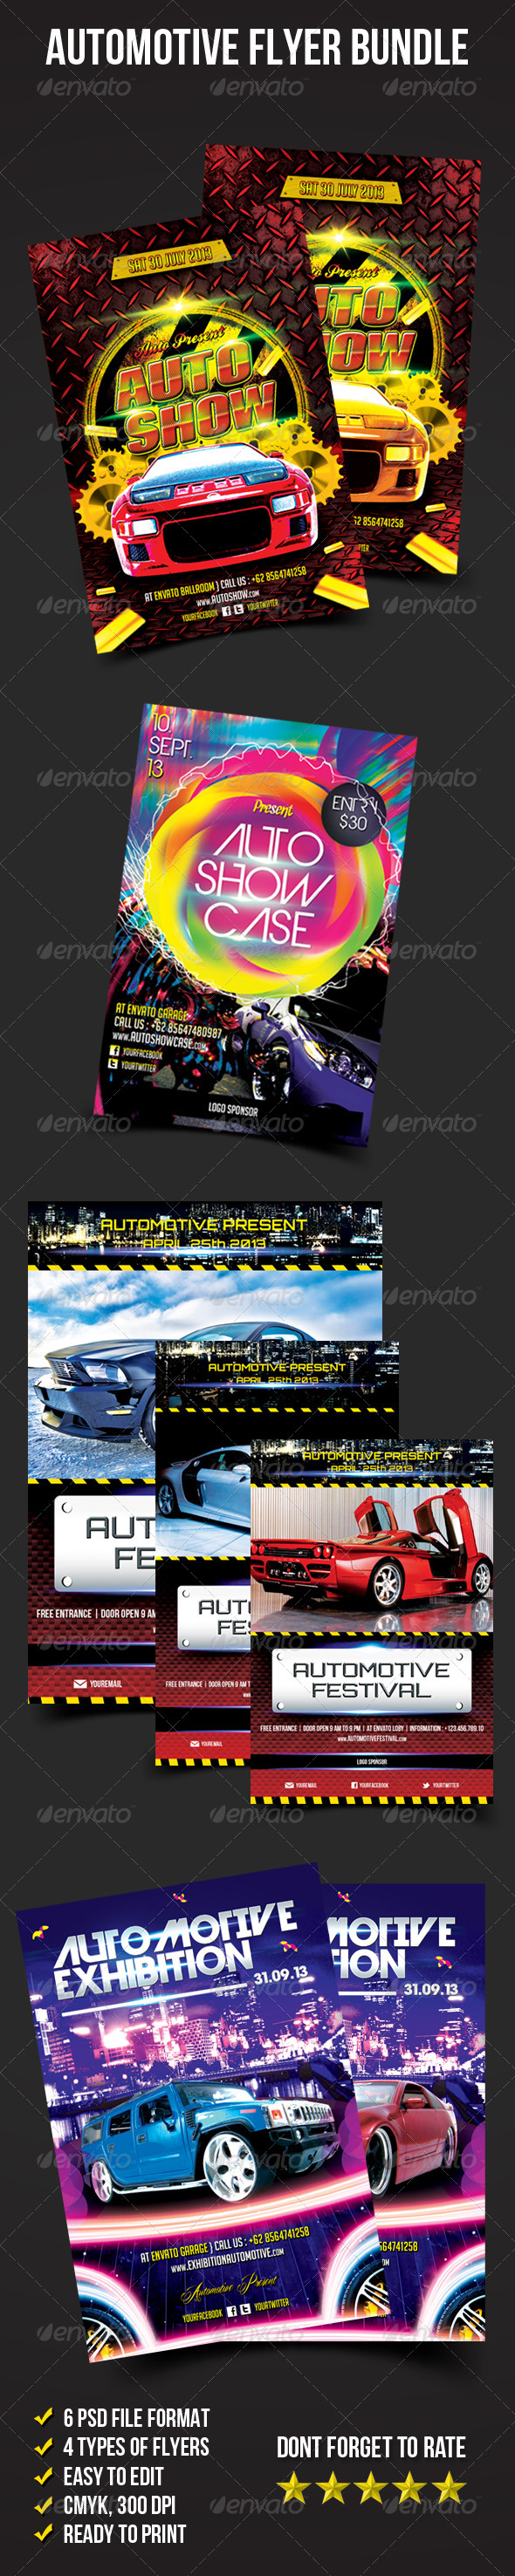 Flyer Bundle 02 (Automotive Flyer) - Miscellaneous Events